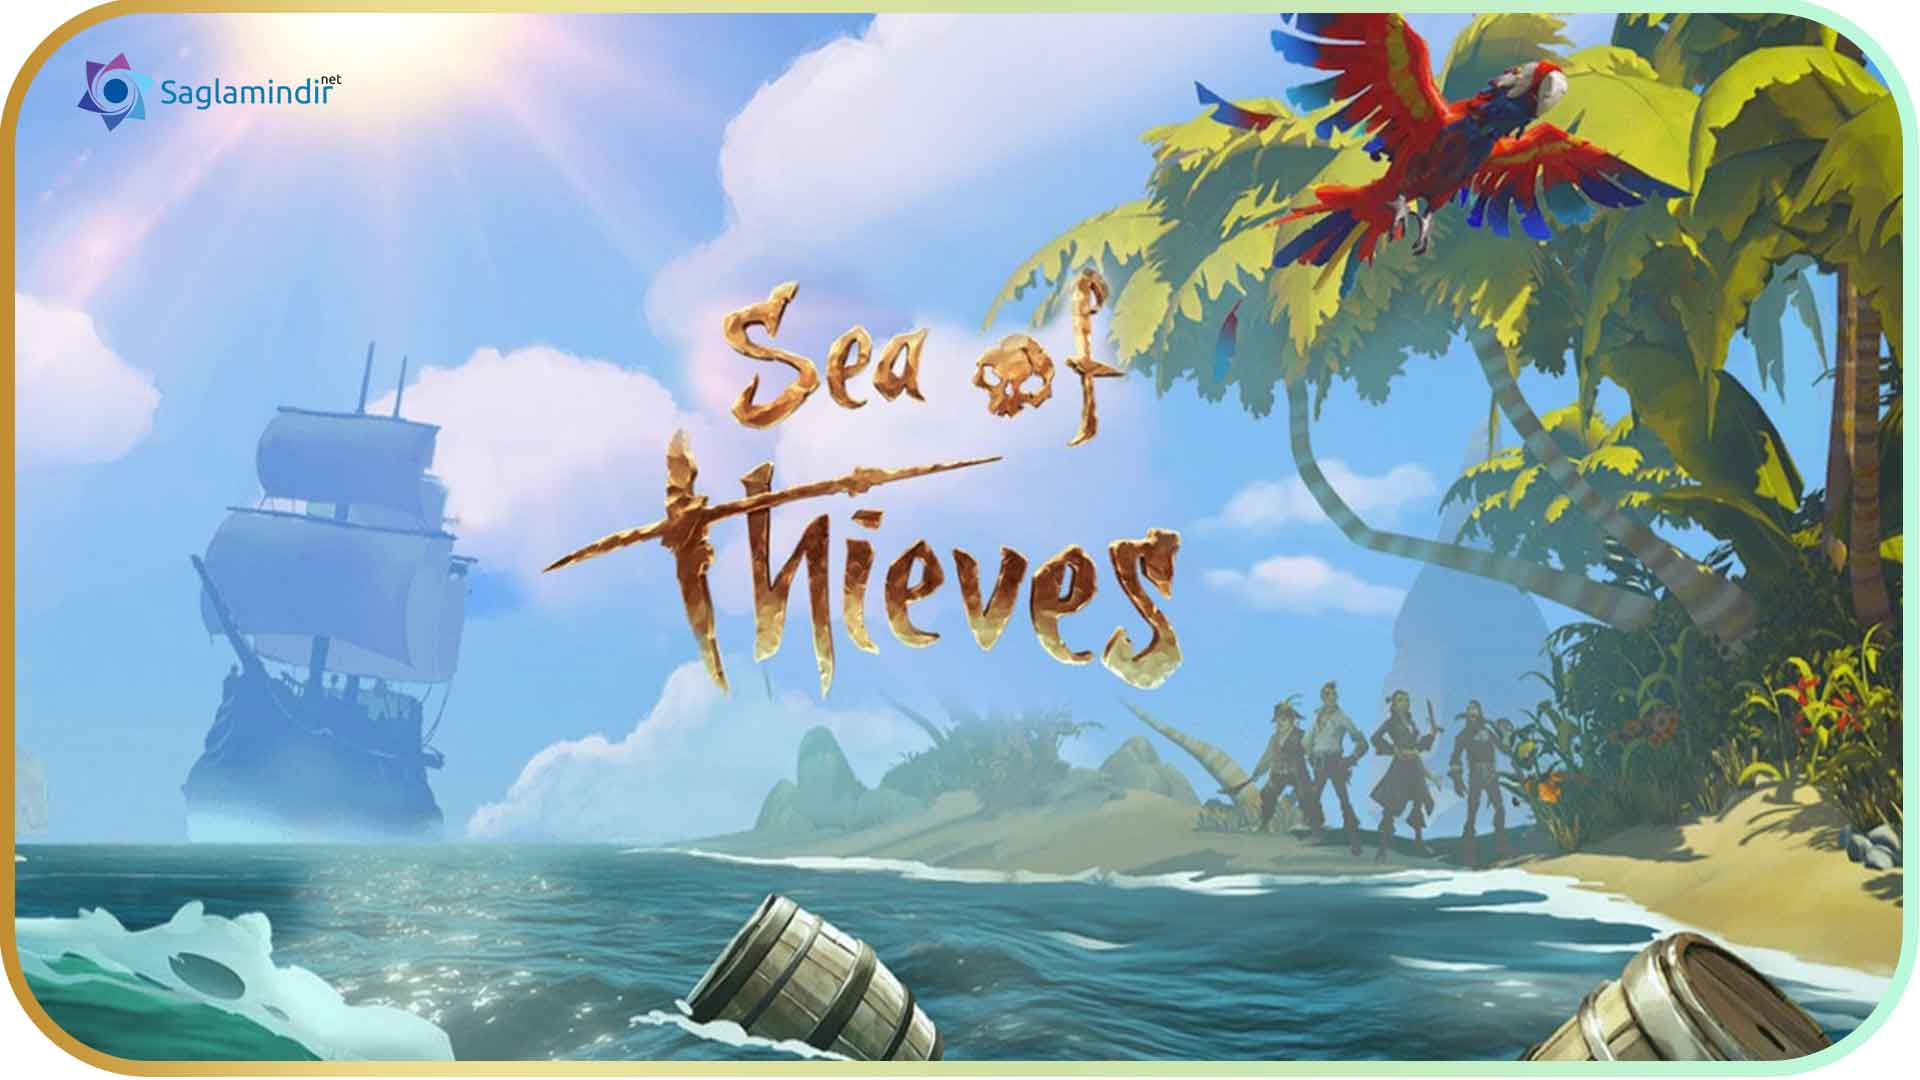 Sea of Thieves saglamindir